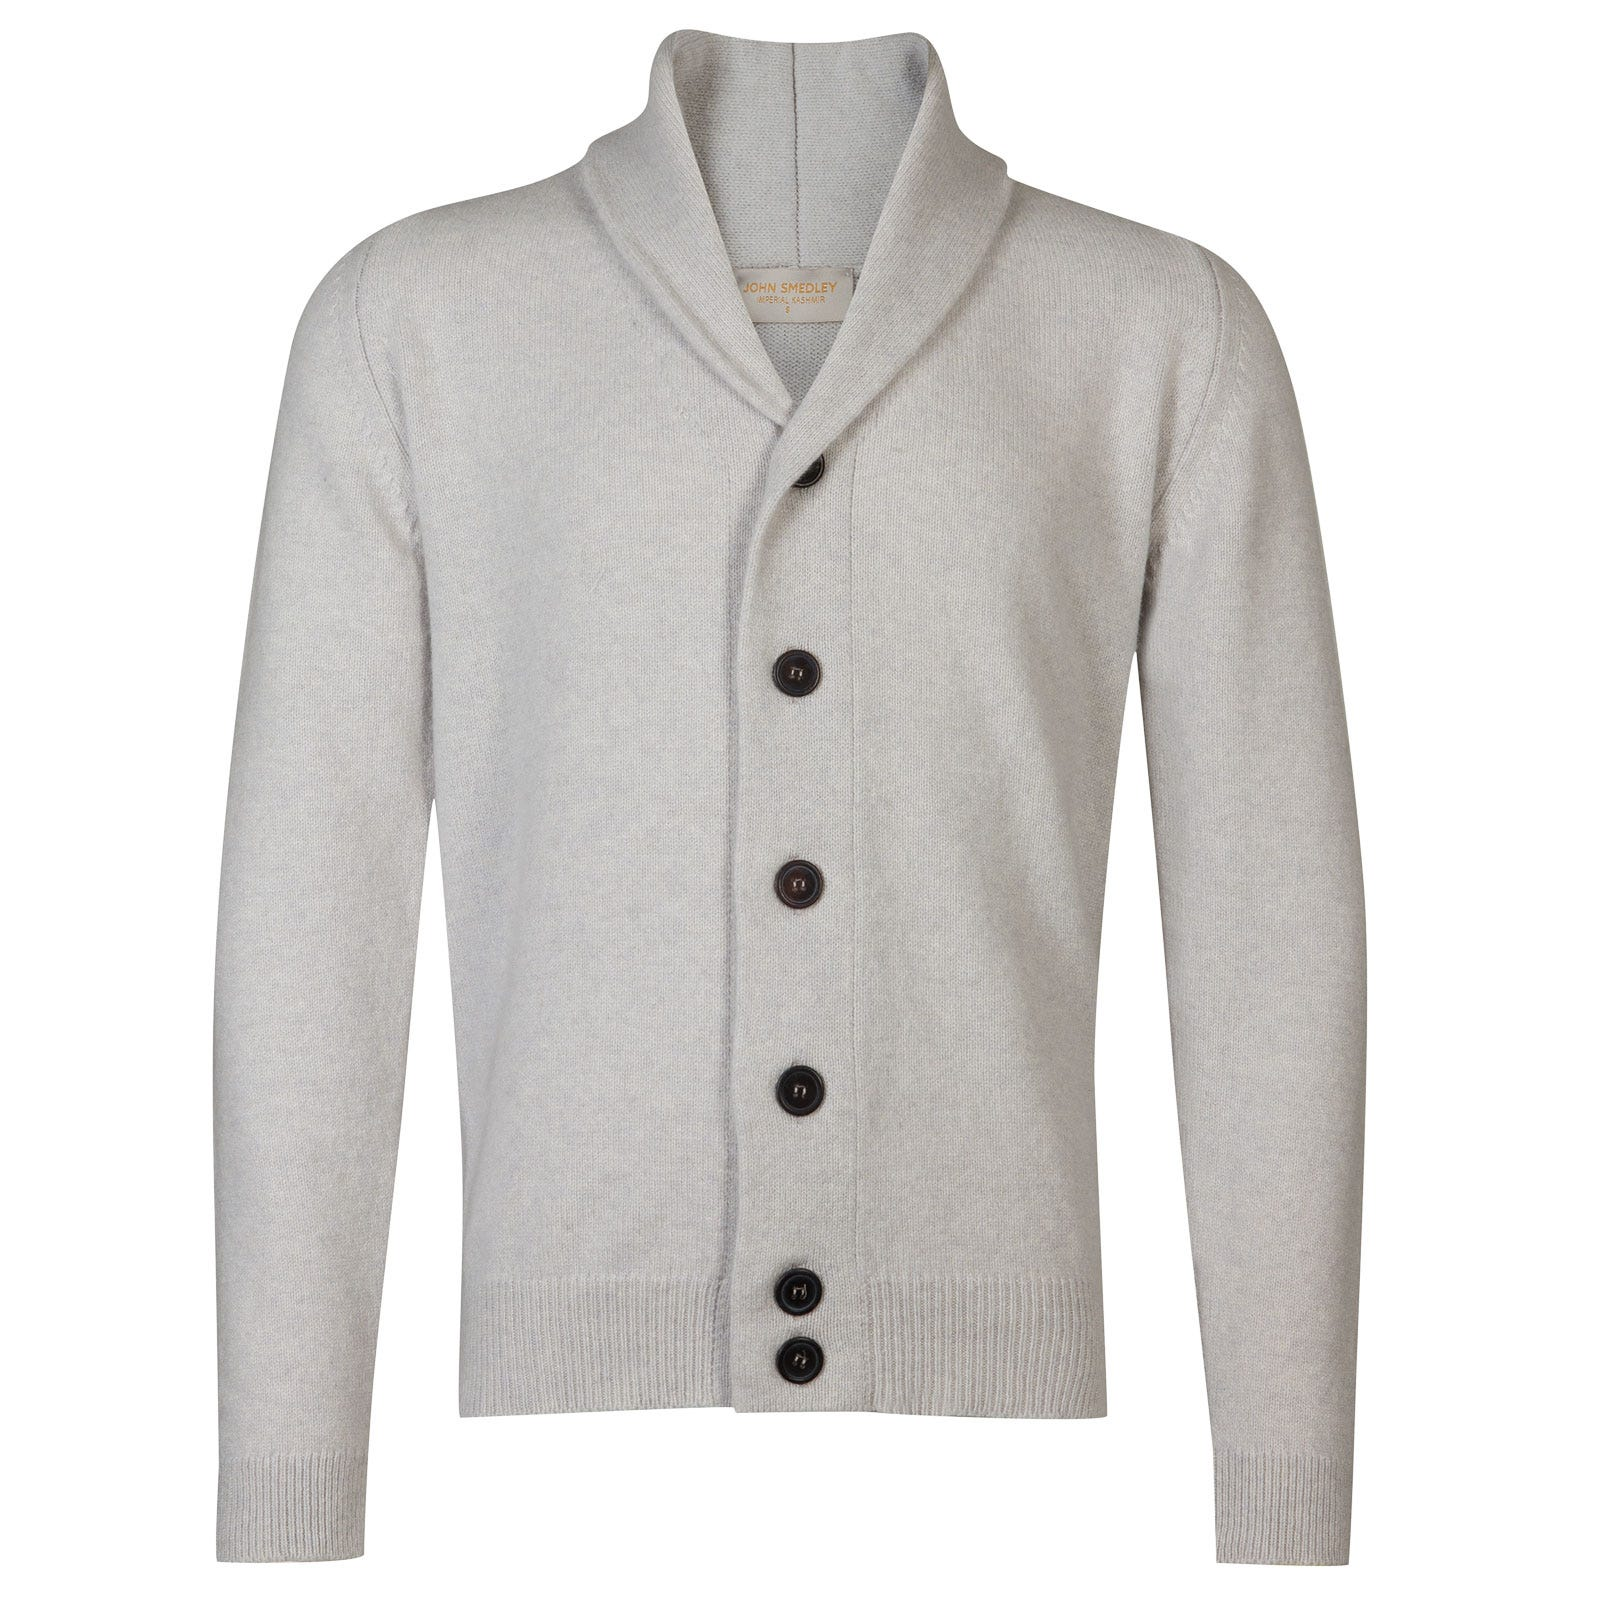 John Smedley patterson Wool and Cashmere Jacket in Soft Grey-M